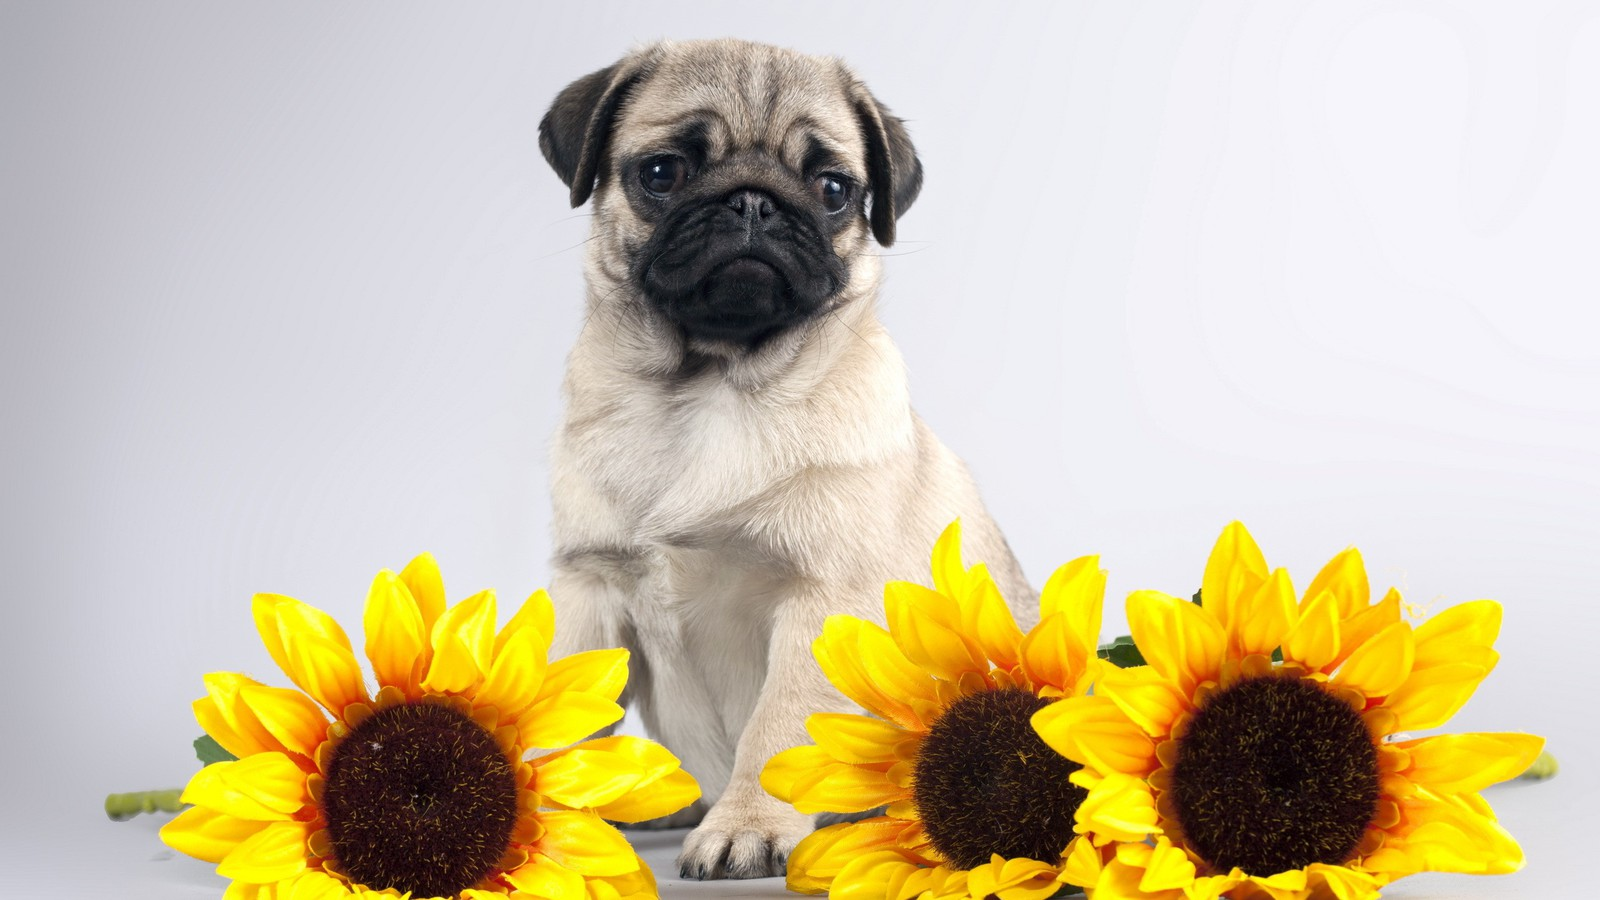 All Wallpapers Pug Dog Hd Wallpapers: Pug And Sunflowers Wallpaper